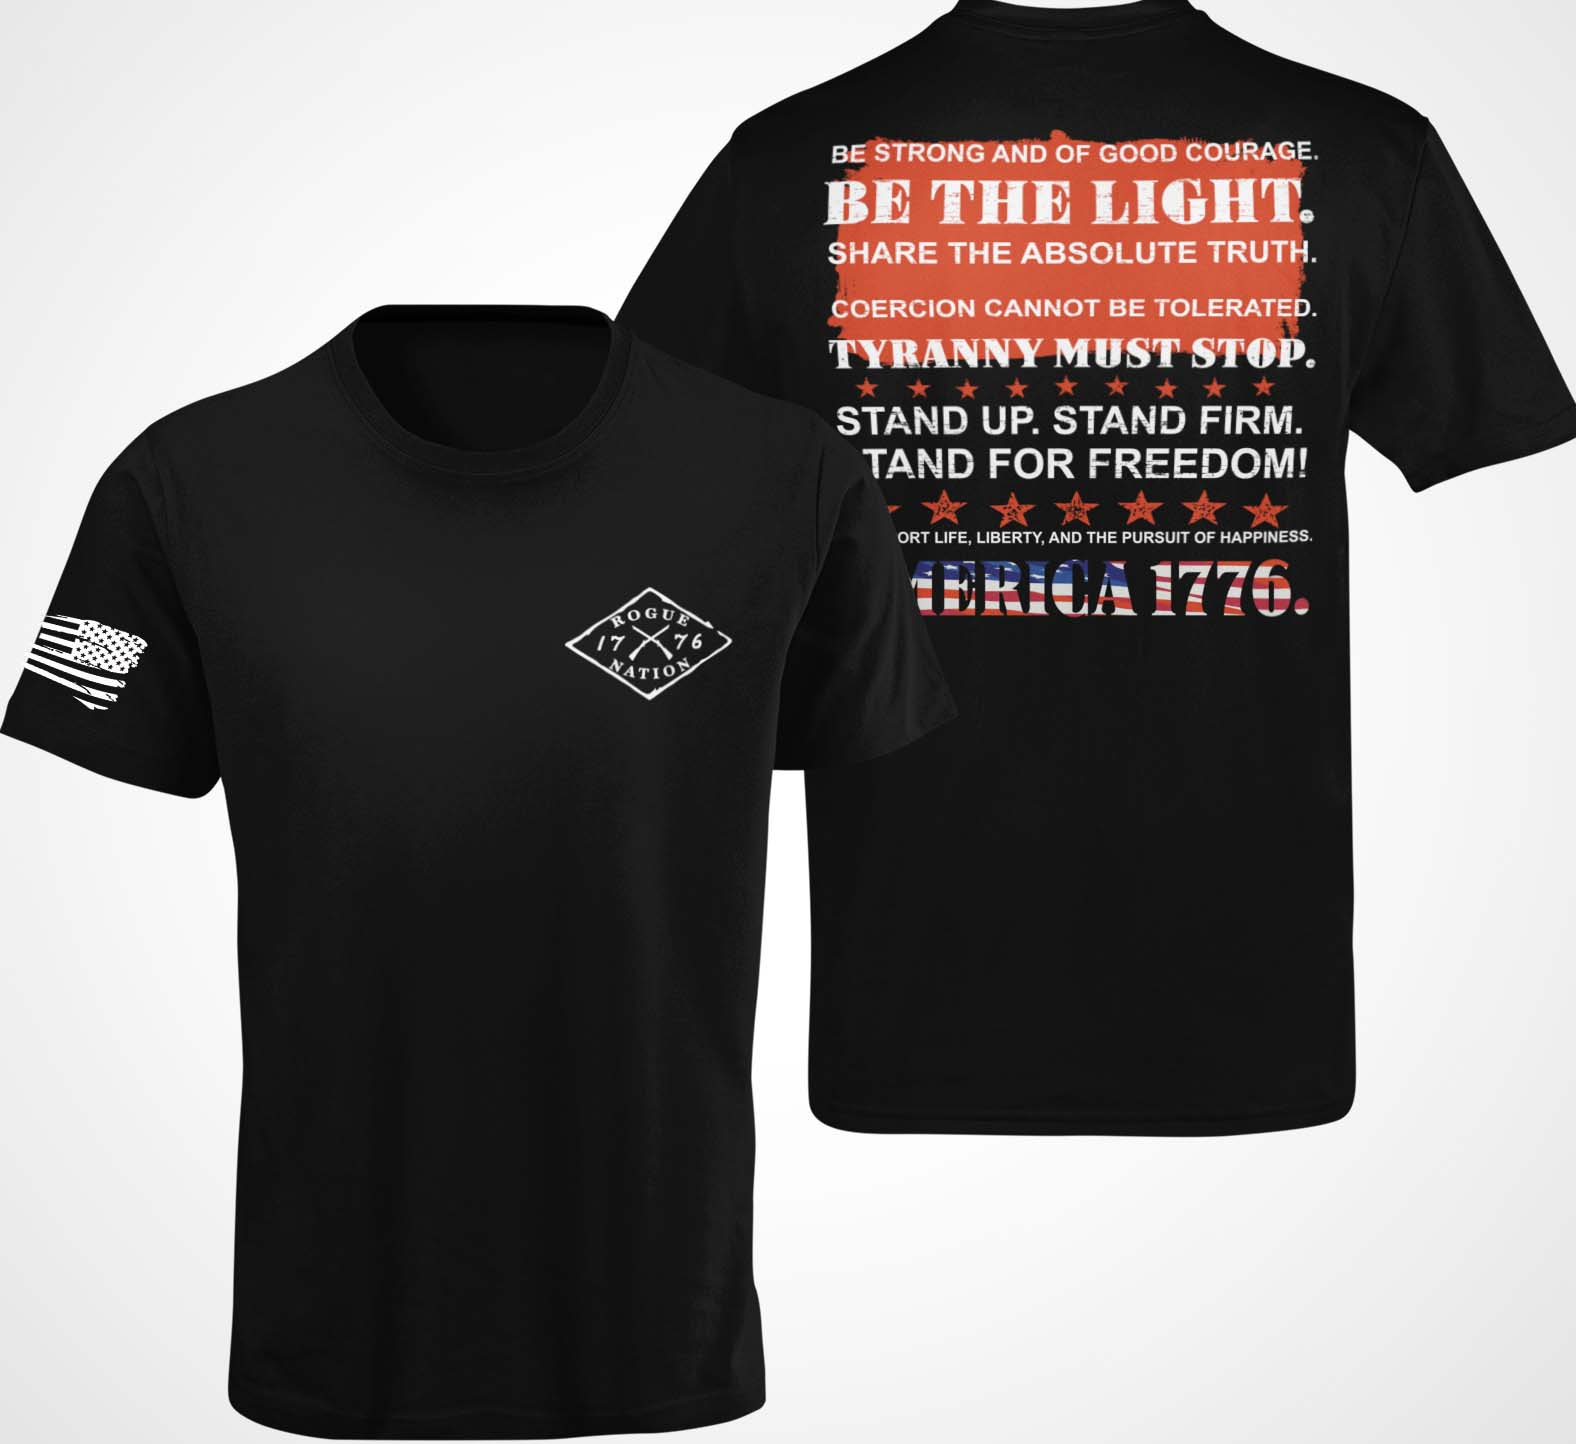 Stand Up Stand Firm on Back of Black T-Shirt